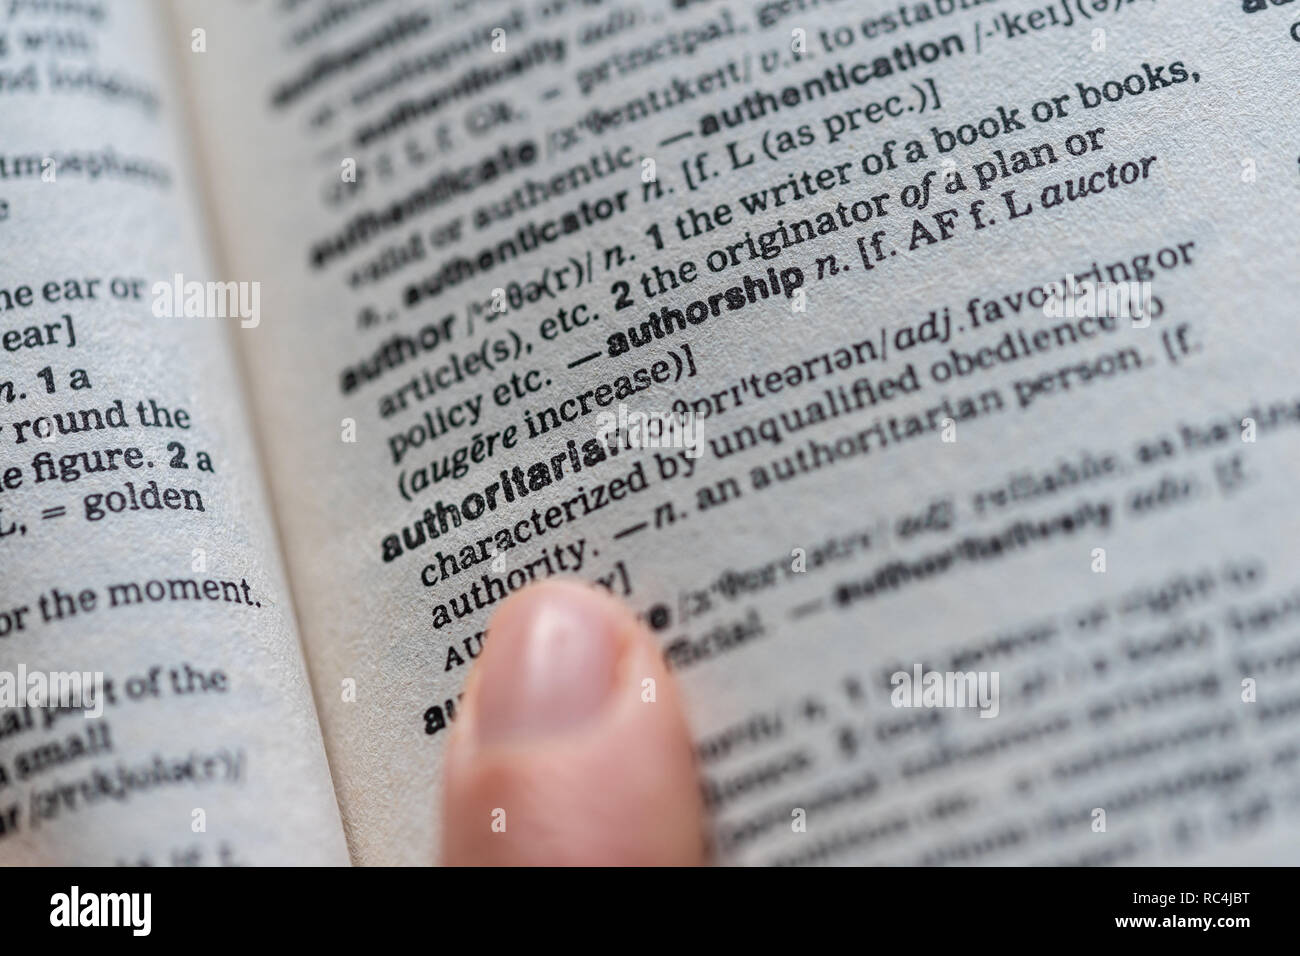 Thesaurus Page Stock Photos & Thesaurus Page Stock Images